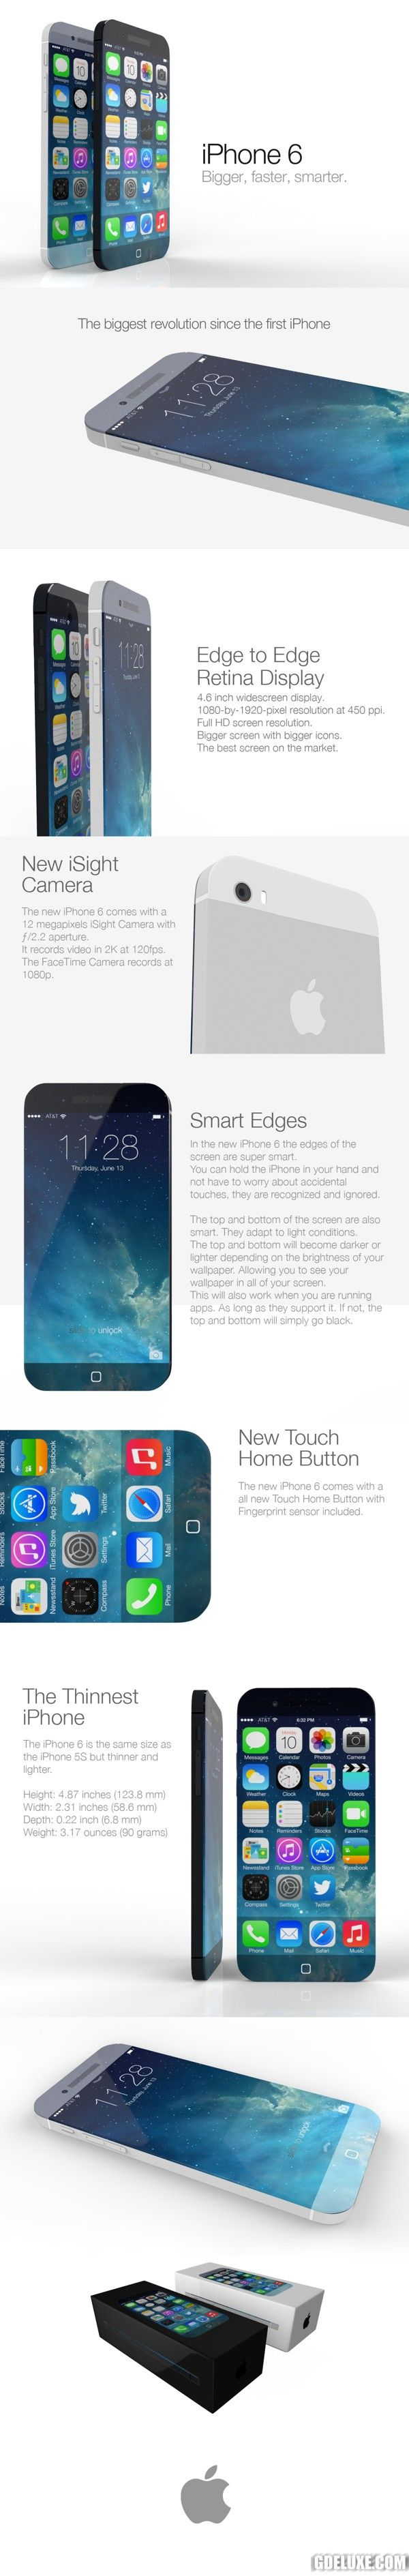 iPhone 6 - Reasons that people will be crazy for this iPhone.